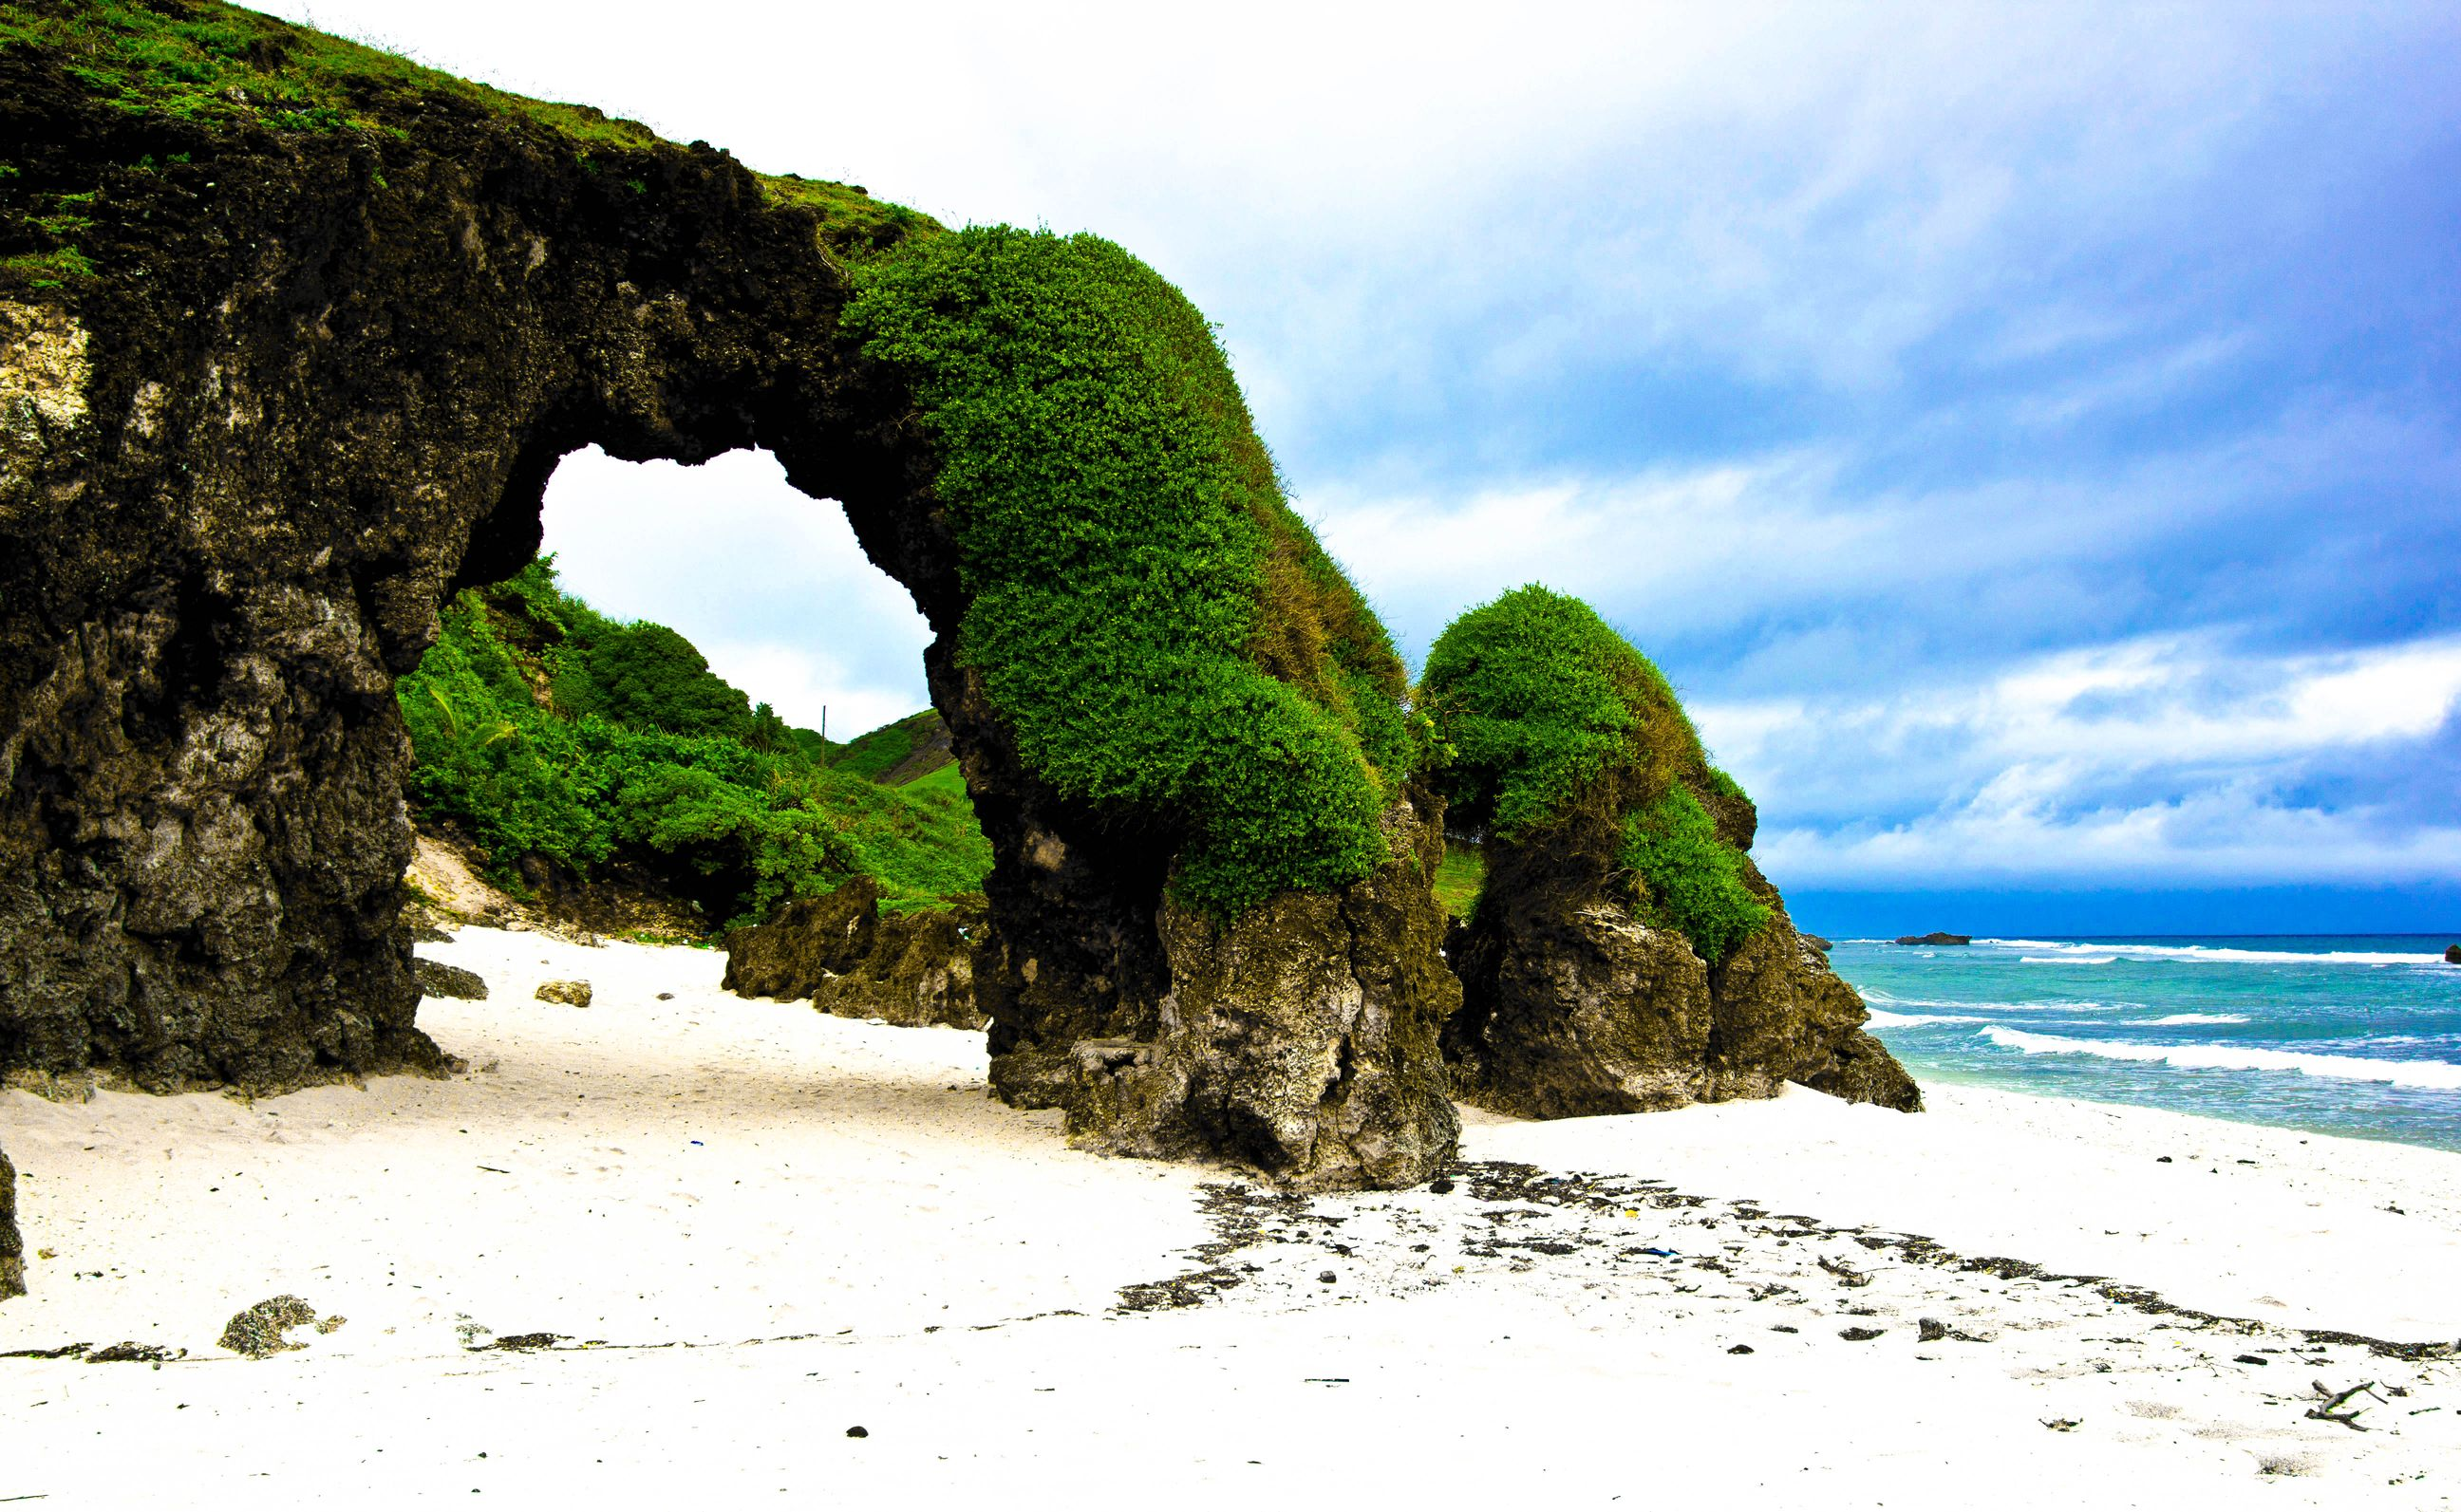 Stone arch covered in moss stands upon a white sand beach in Batanes, Philippines